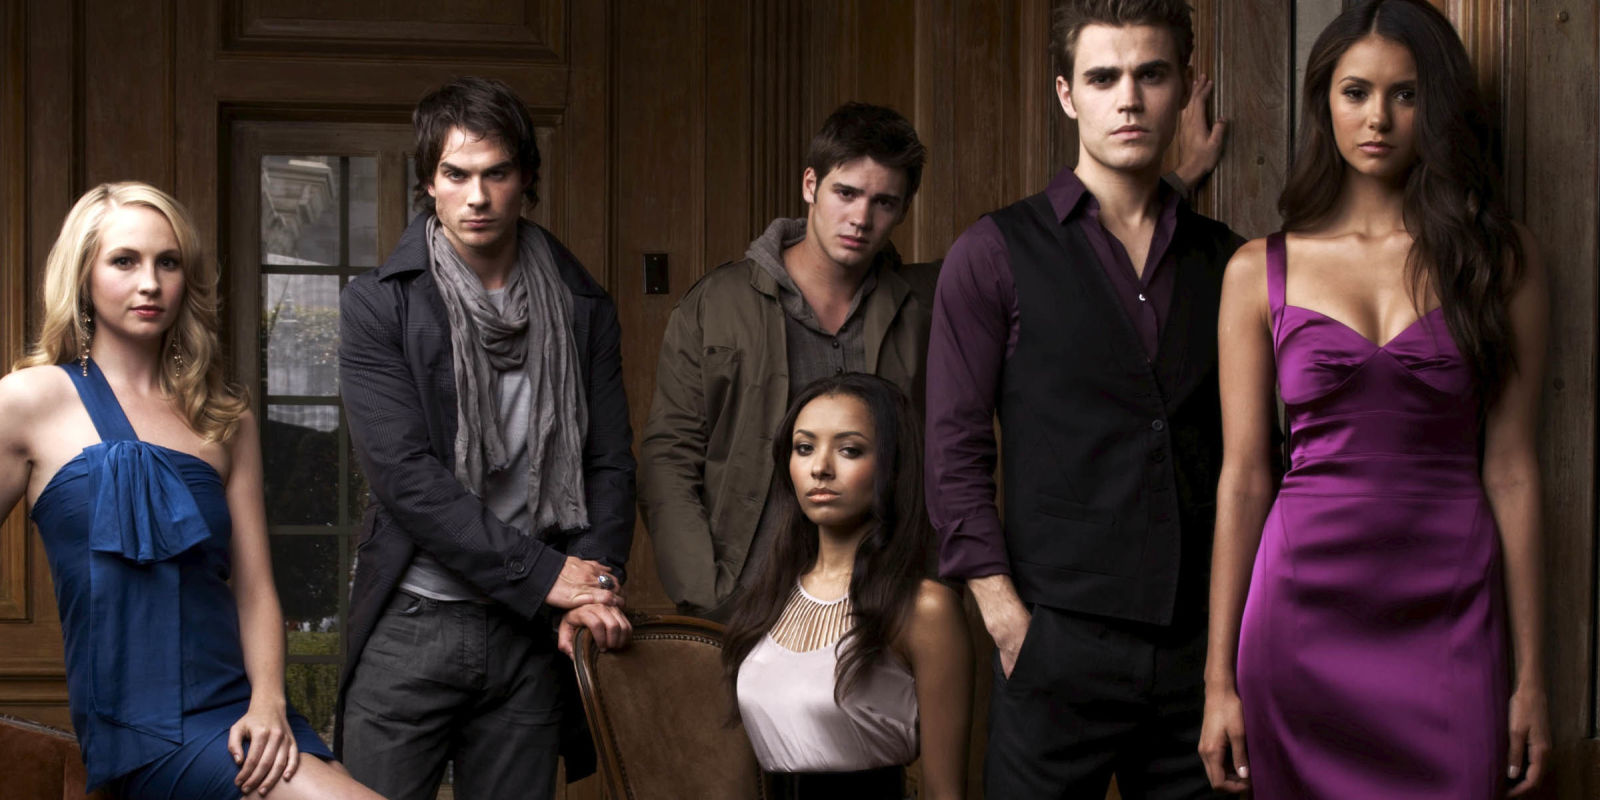 The Vampire Diaries 6 - 1 in Streaming - PirateStreaming